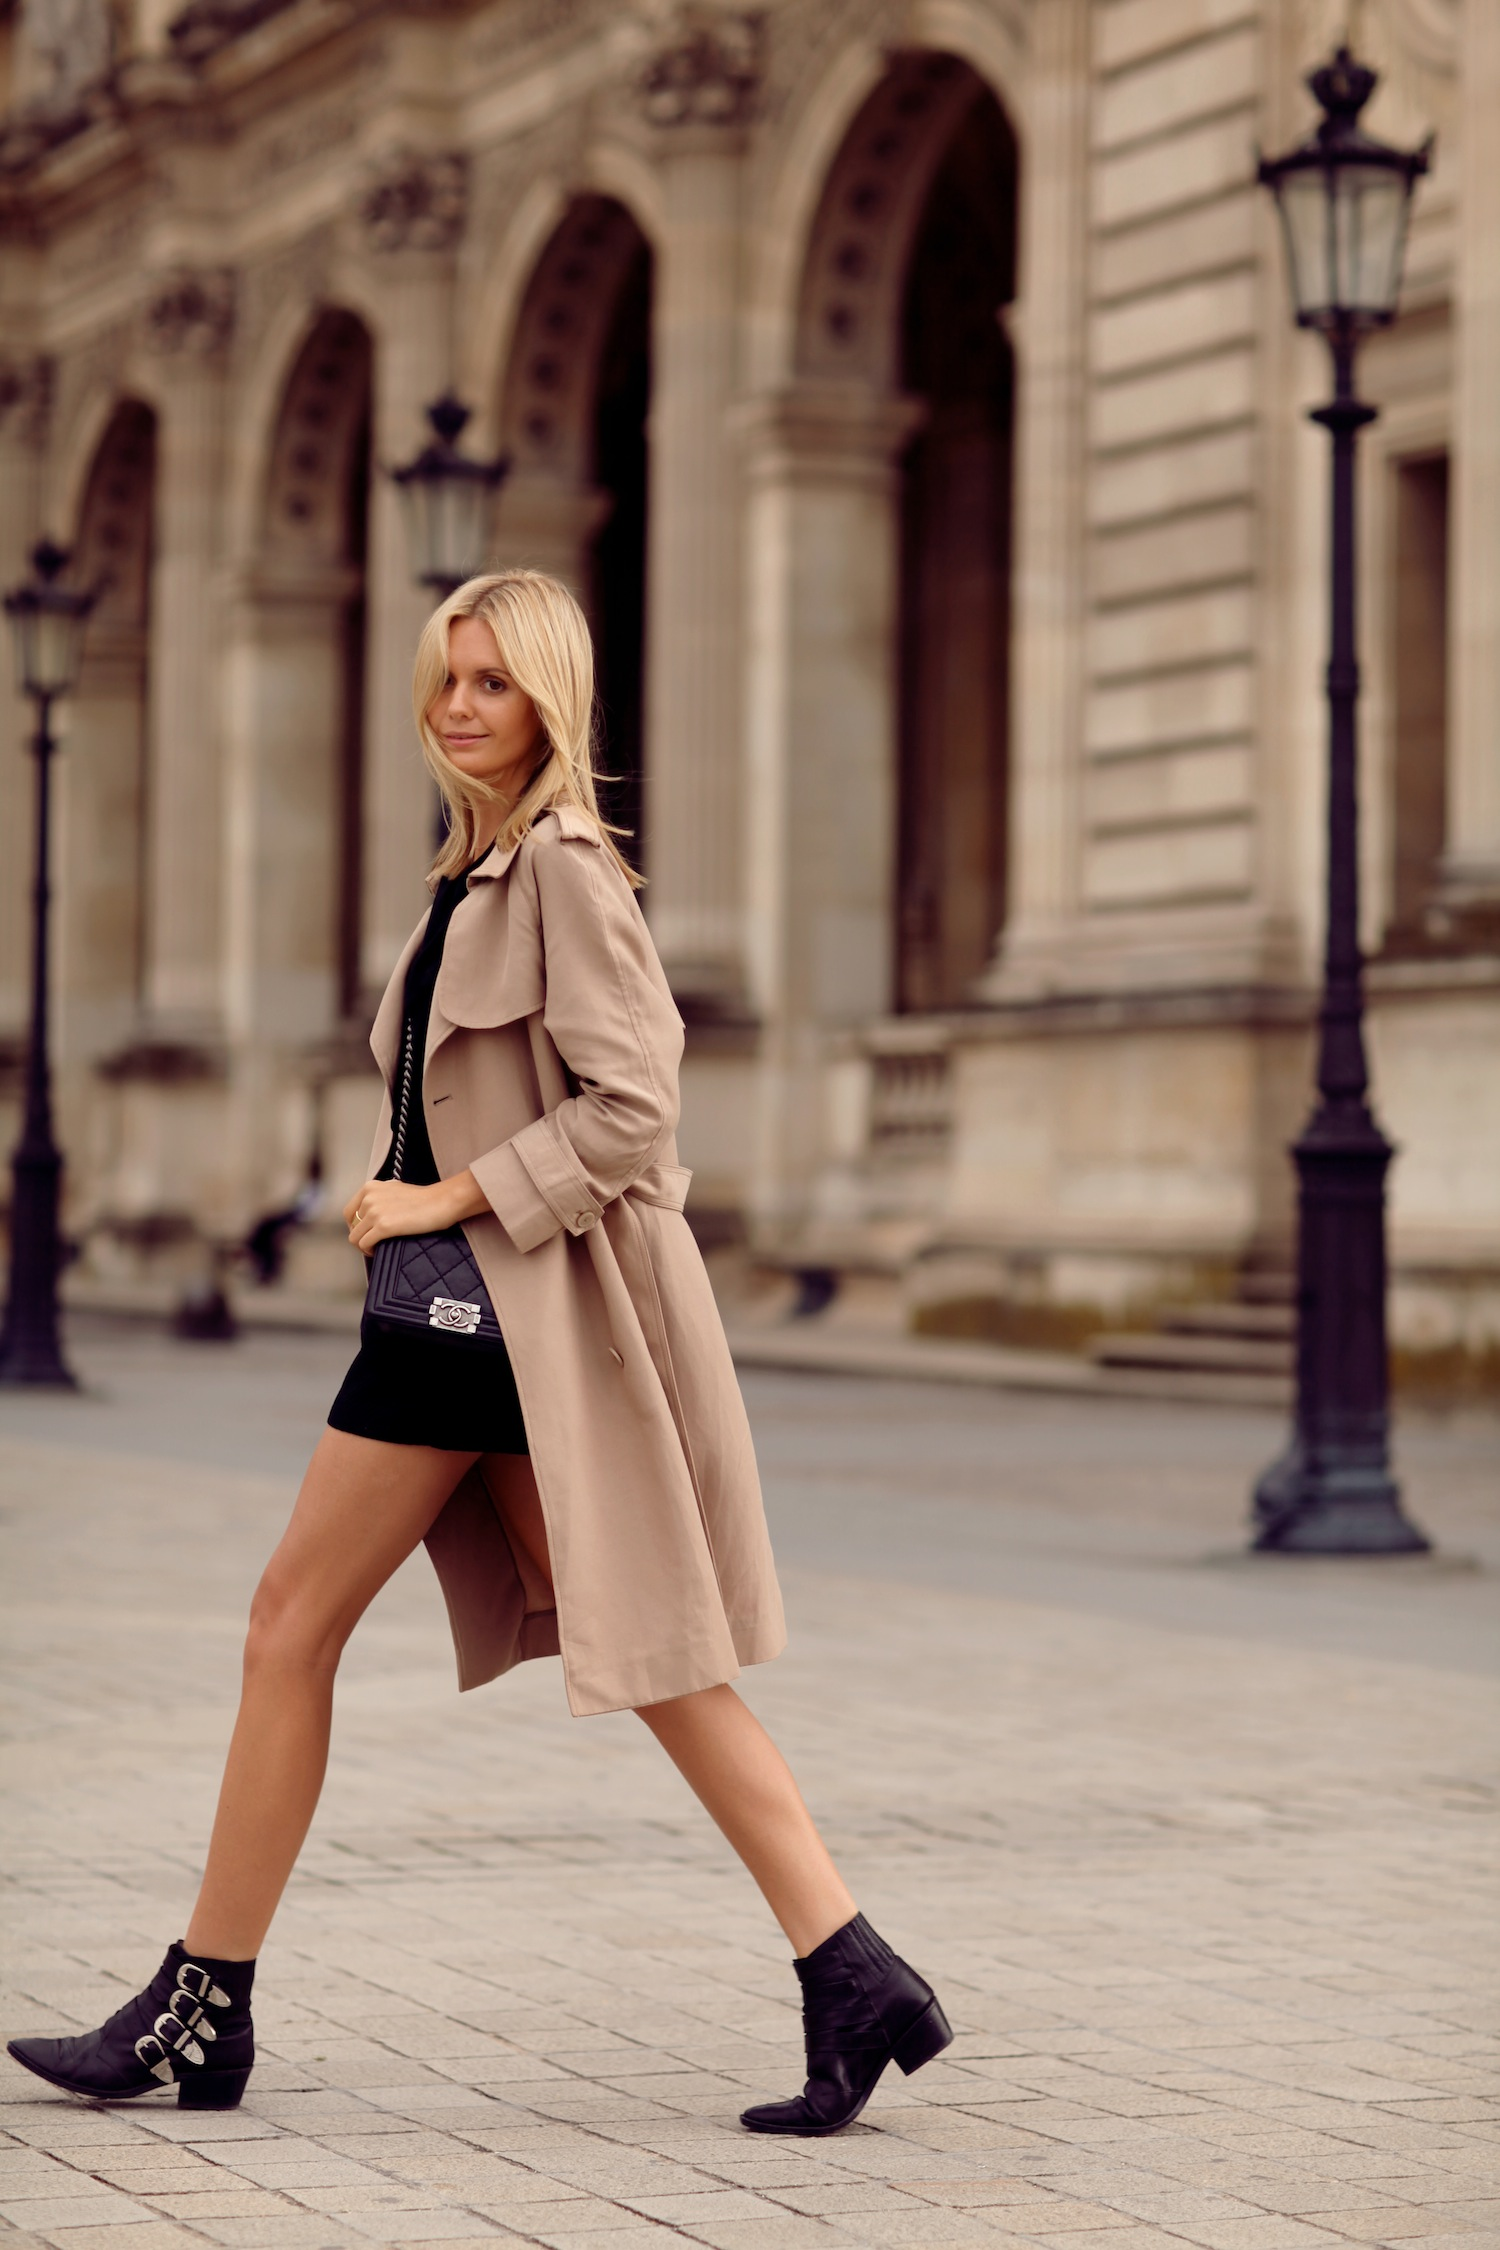 Jessica Stein is wearing a trench coat from Sportscraft, black blouse from Zara, matching shorts from Asos, ankle boots from Toga Pulla and a Boy bag from Chanel